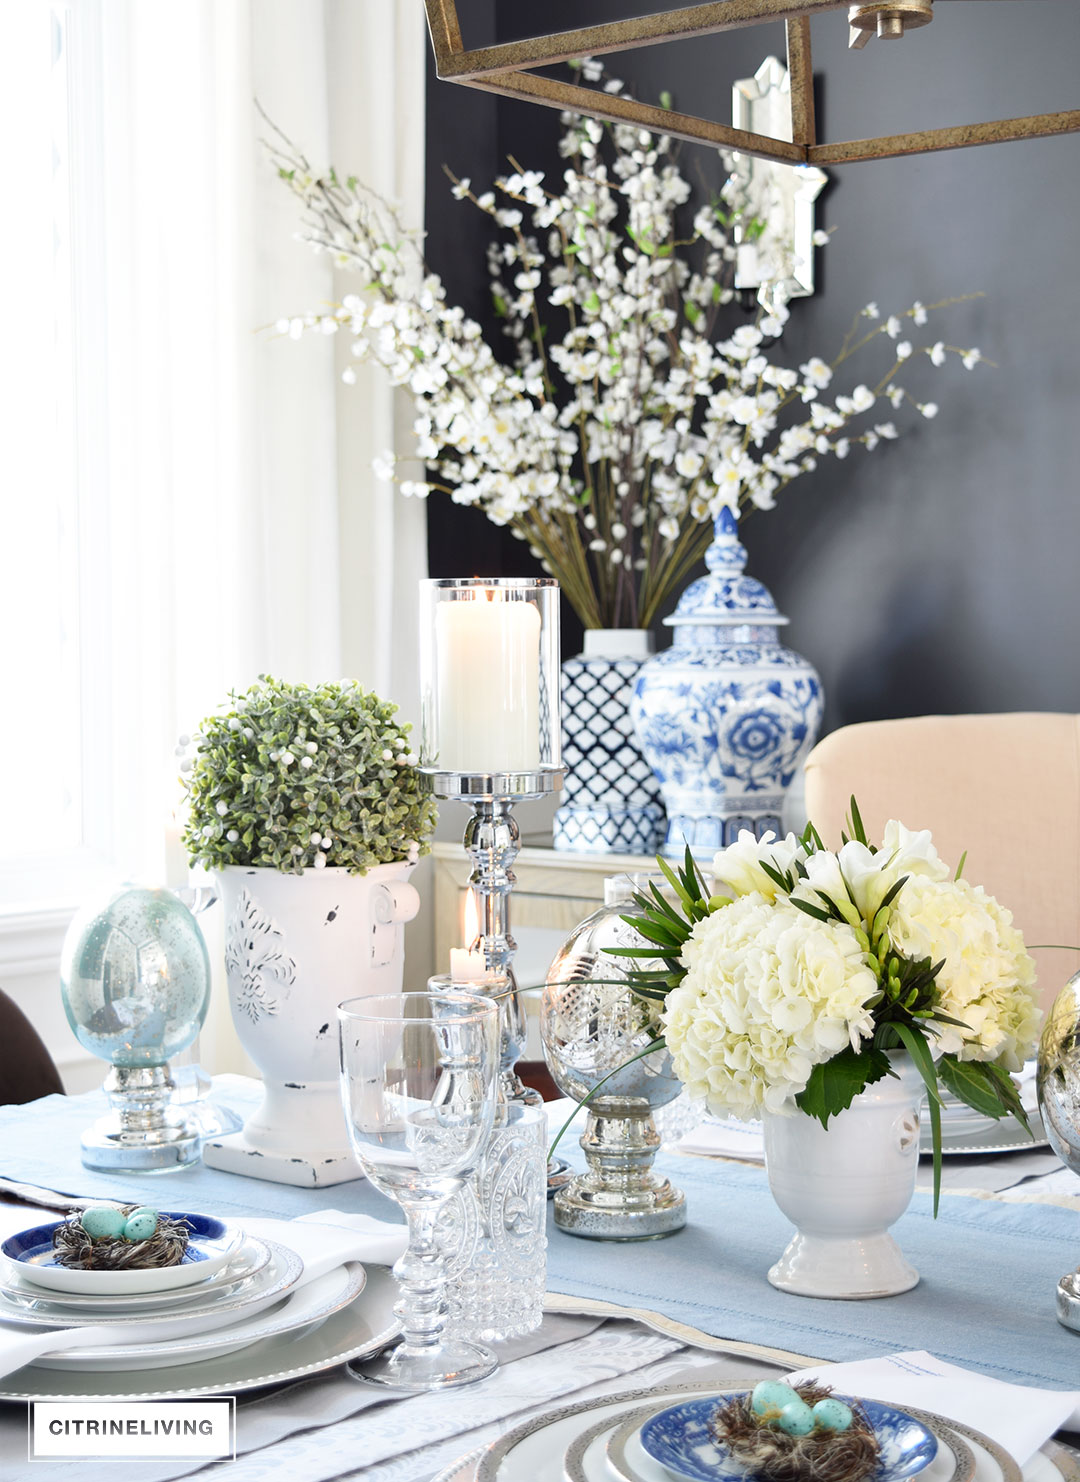 Citrineliving A Simple And Elegant Easter Tablescape